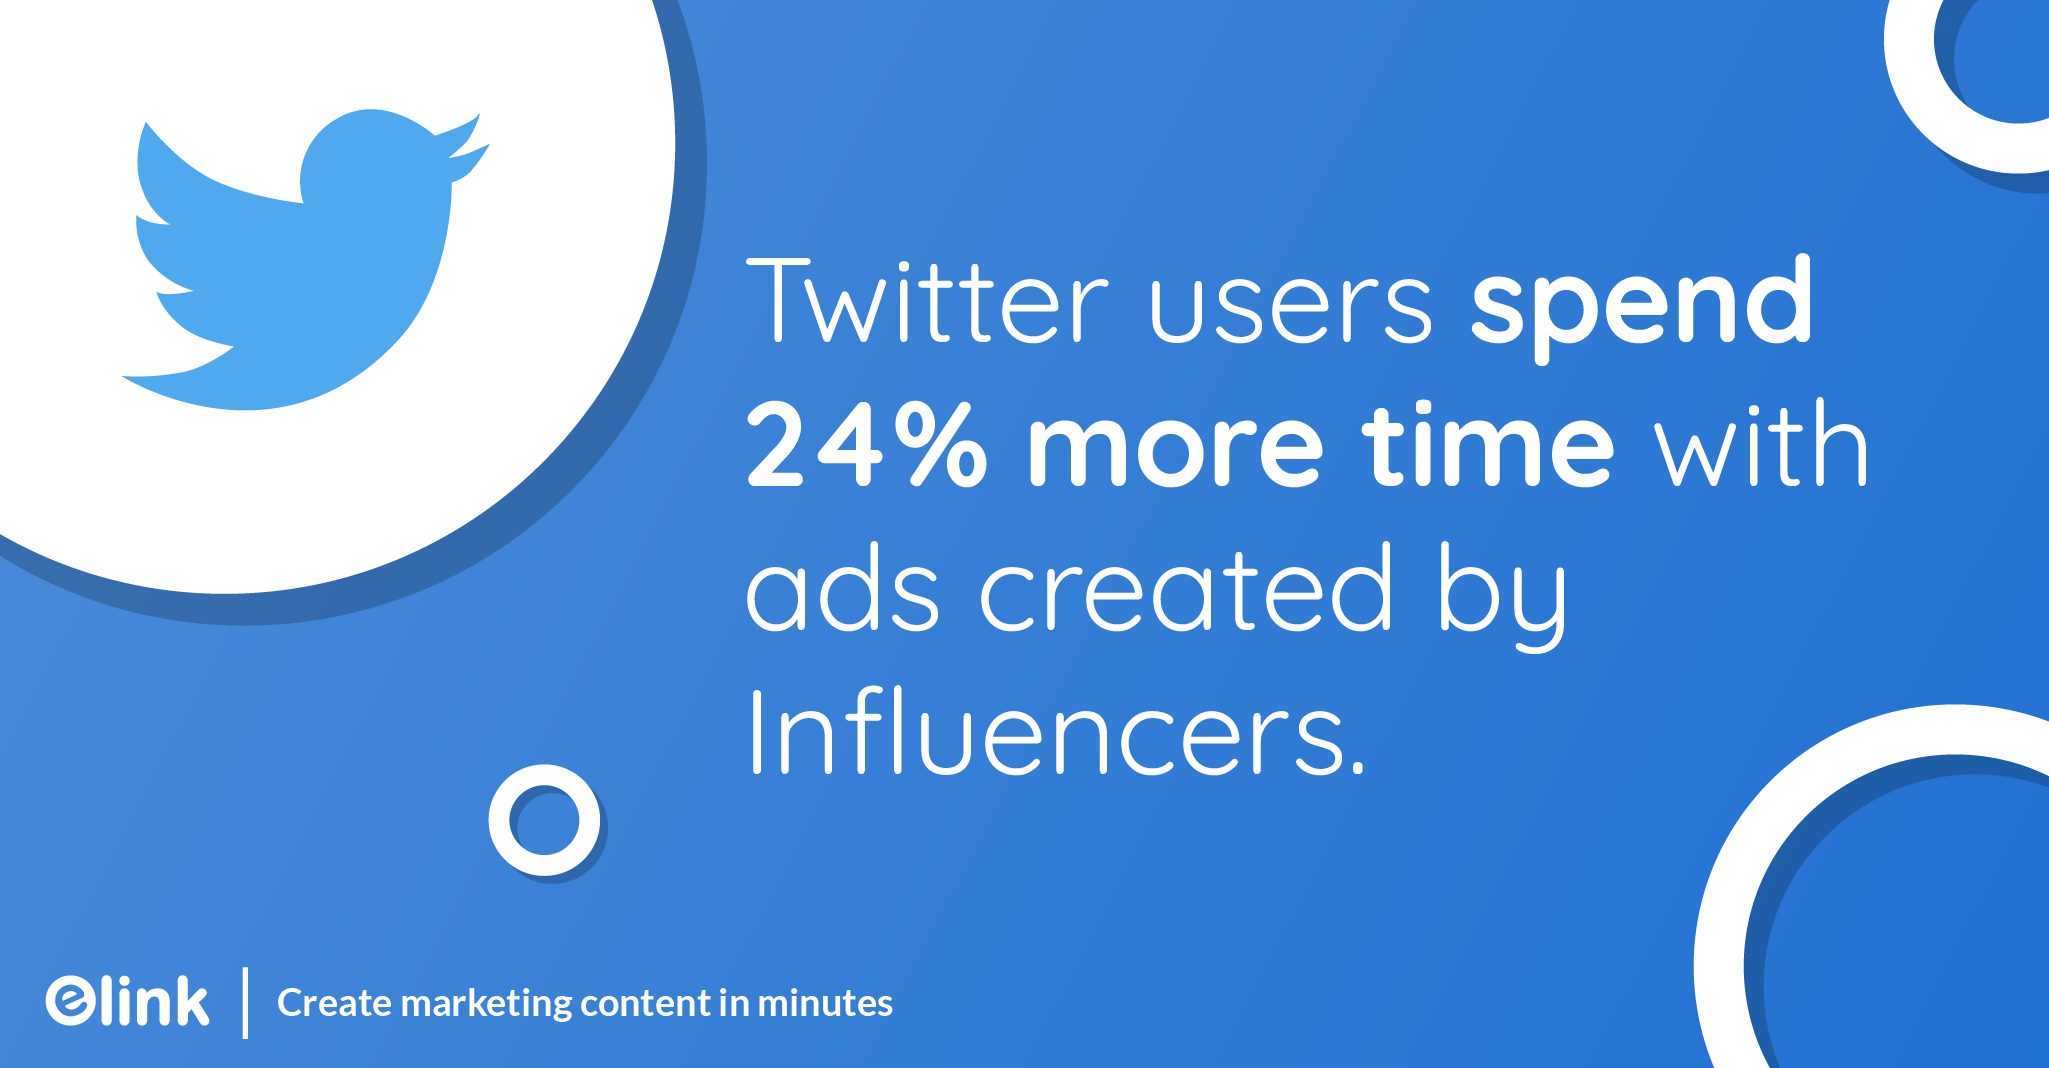 Twitter users spend 24% more time with ads created by Influencers.